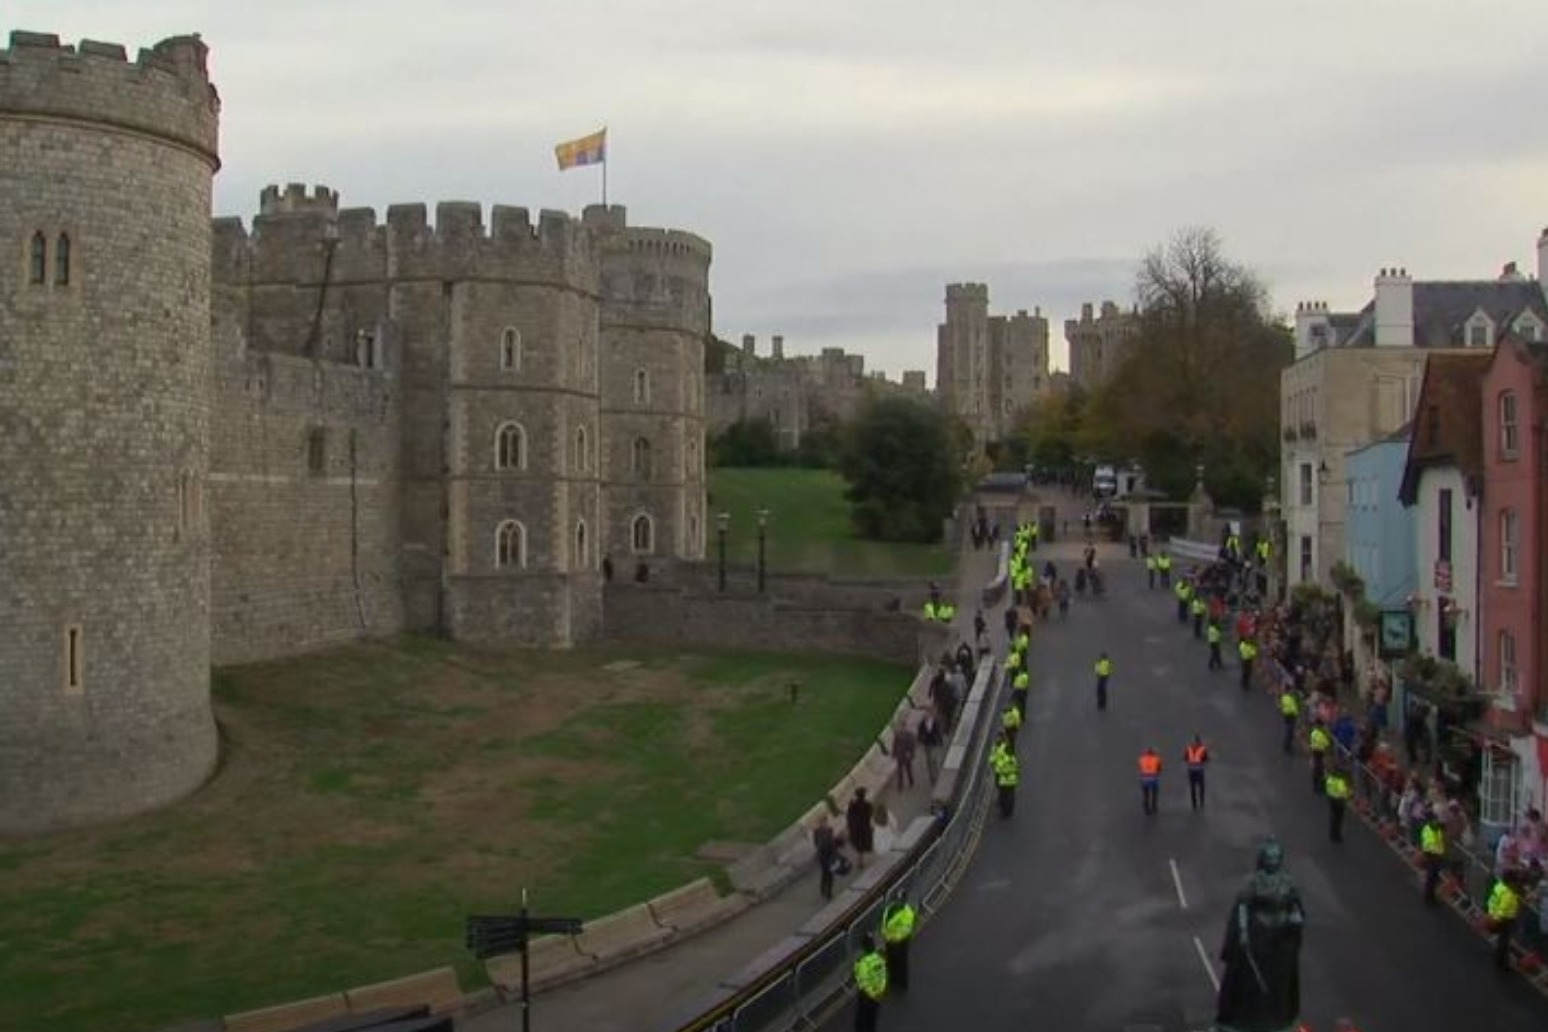 Crowds gather in Windsor ahead of second Royal Wedding of the year